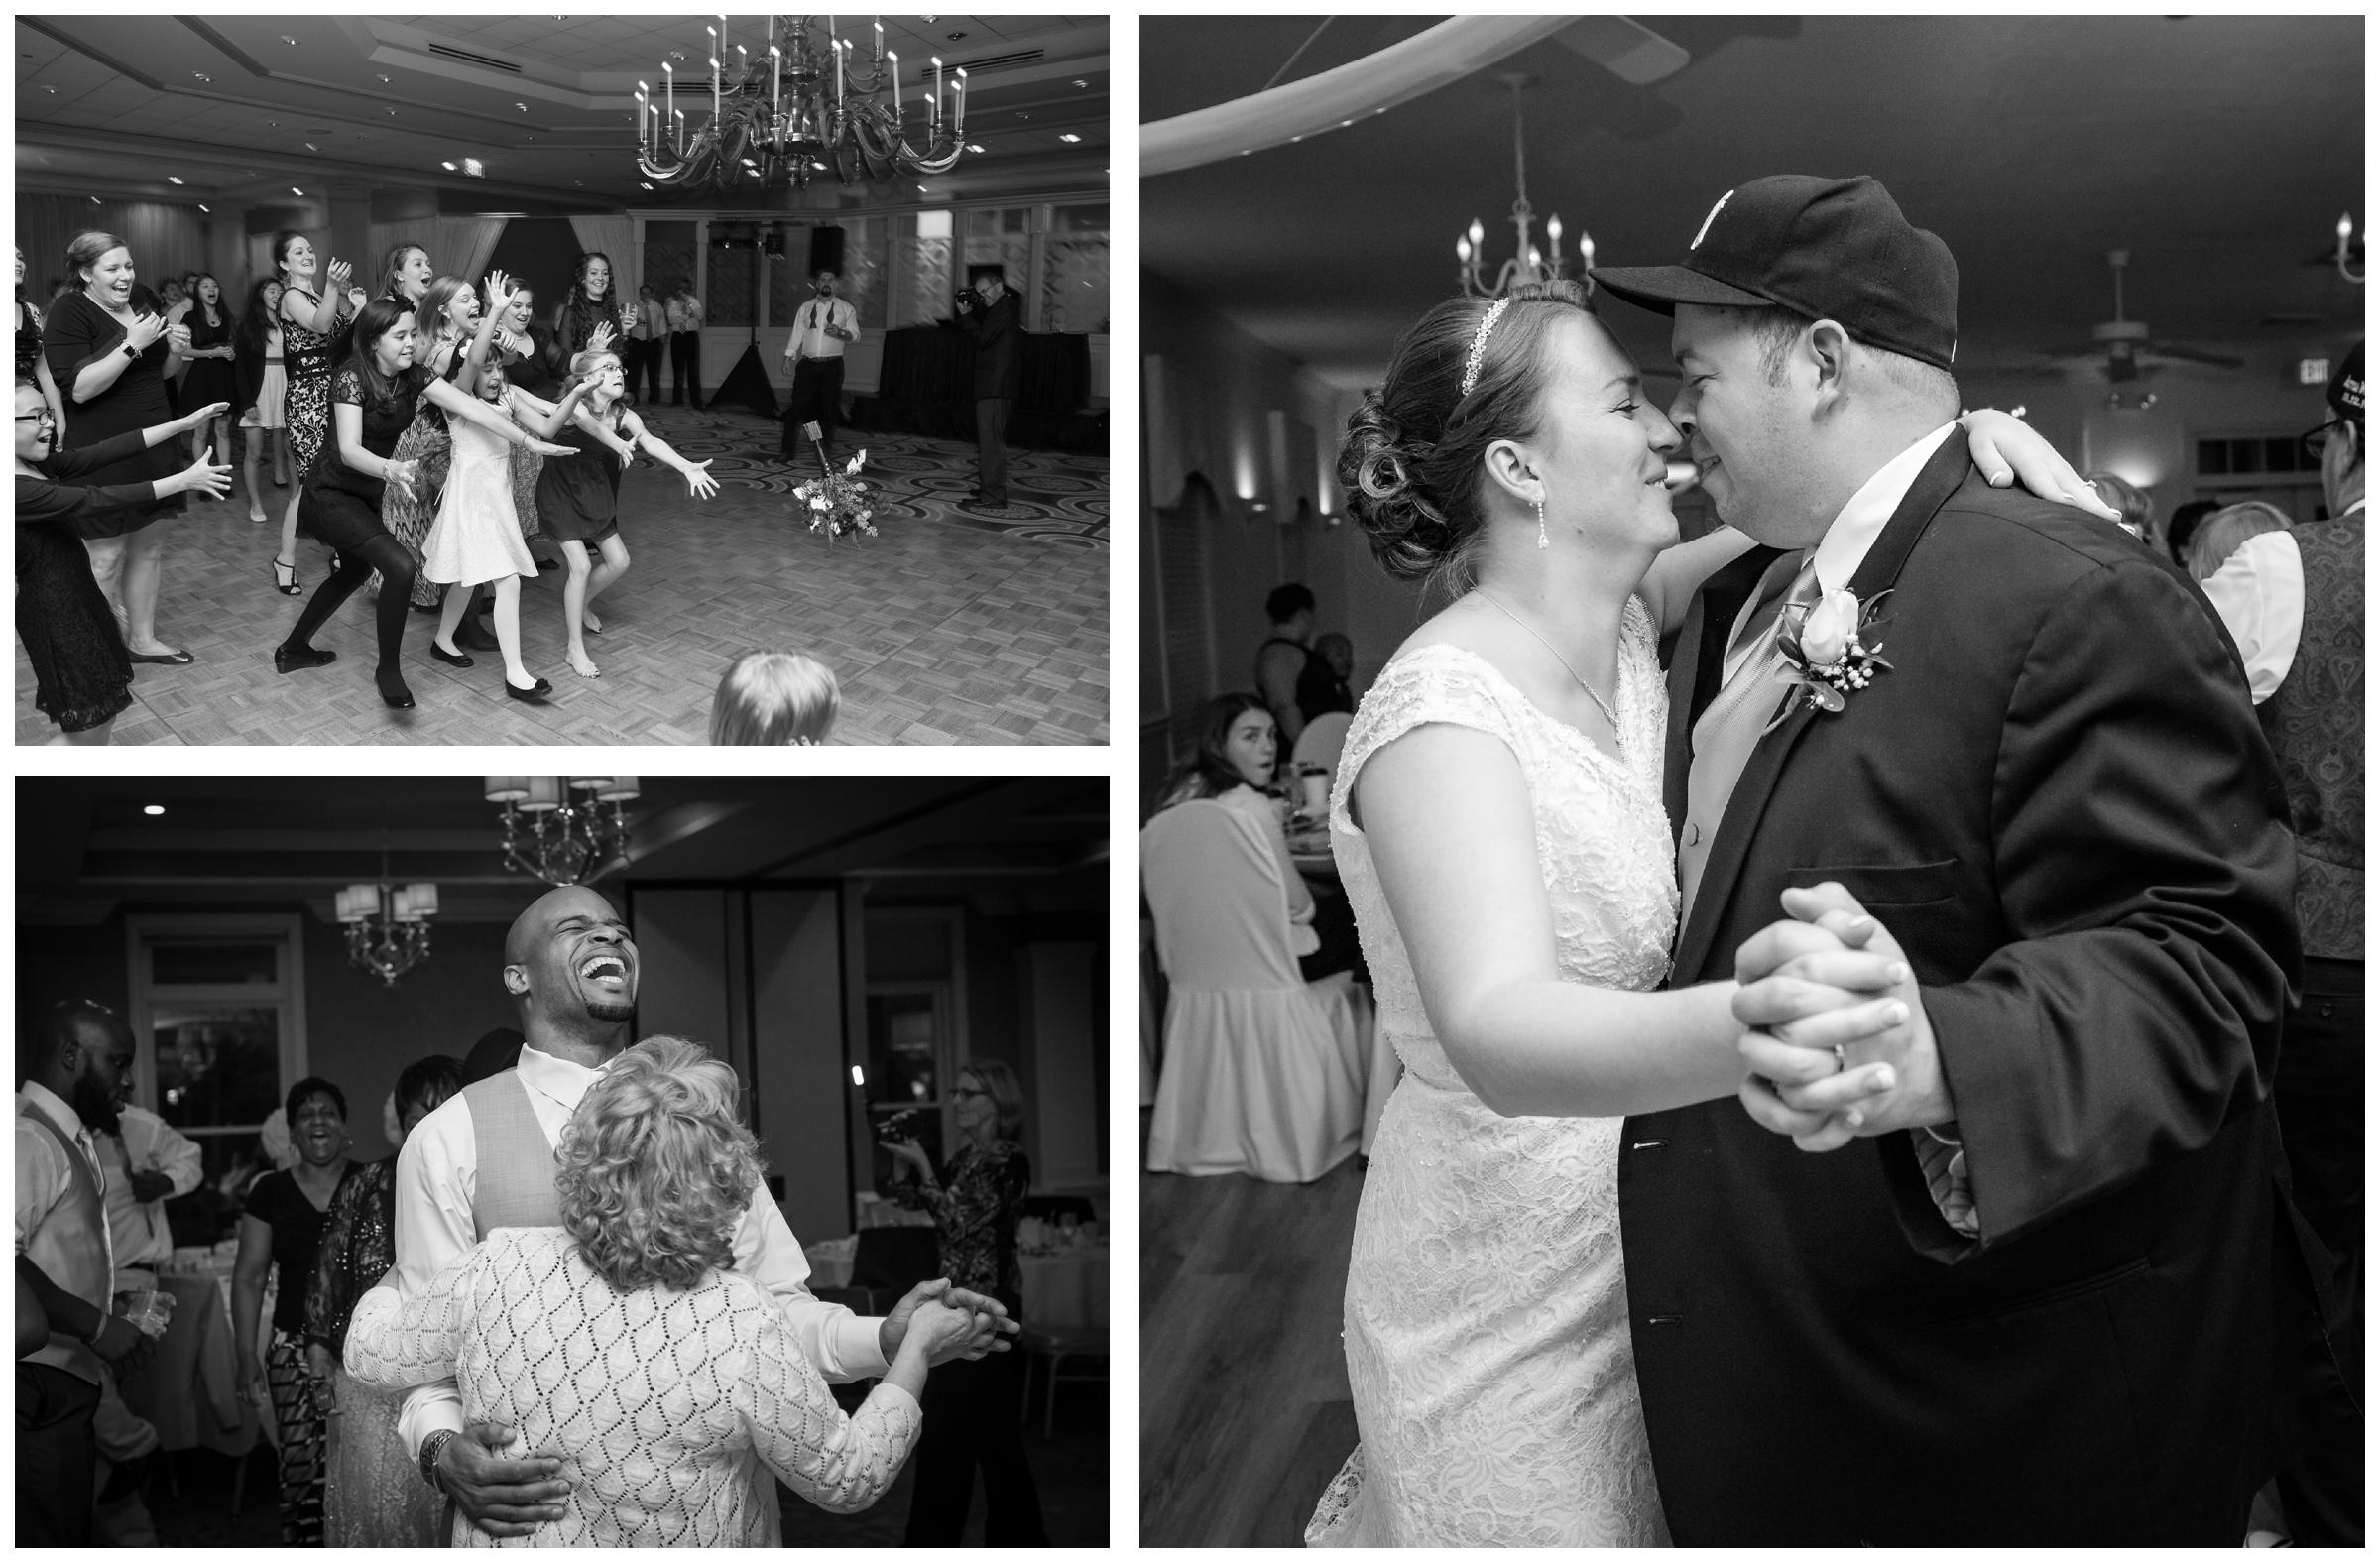 bride and groom dancing and bouquet toss during wedding reception